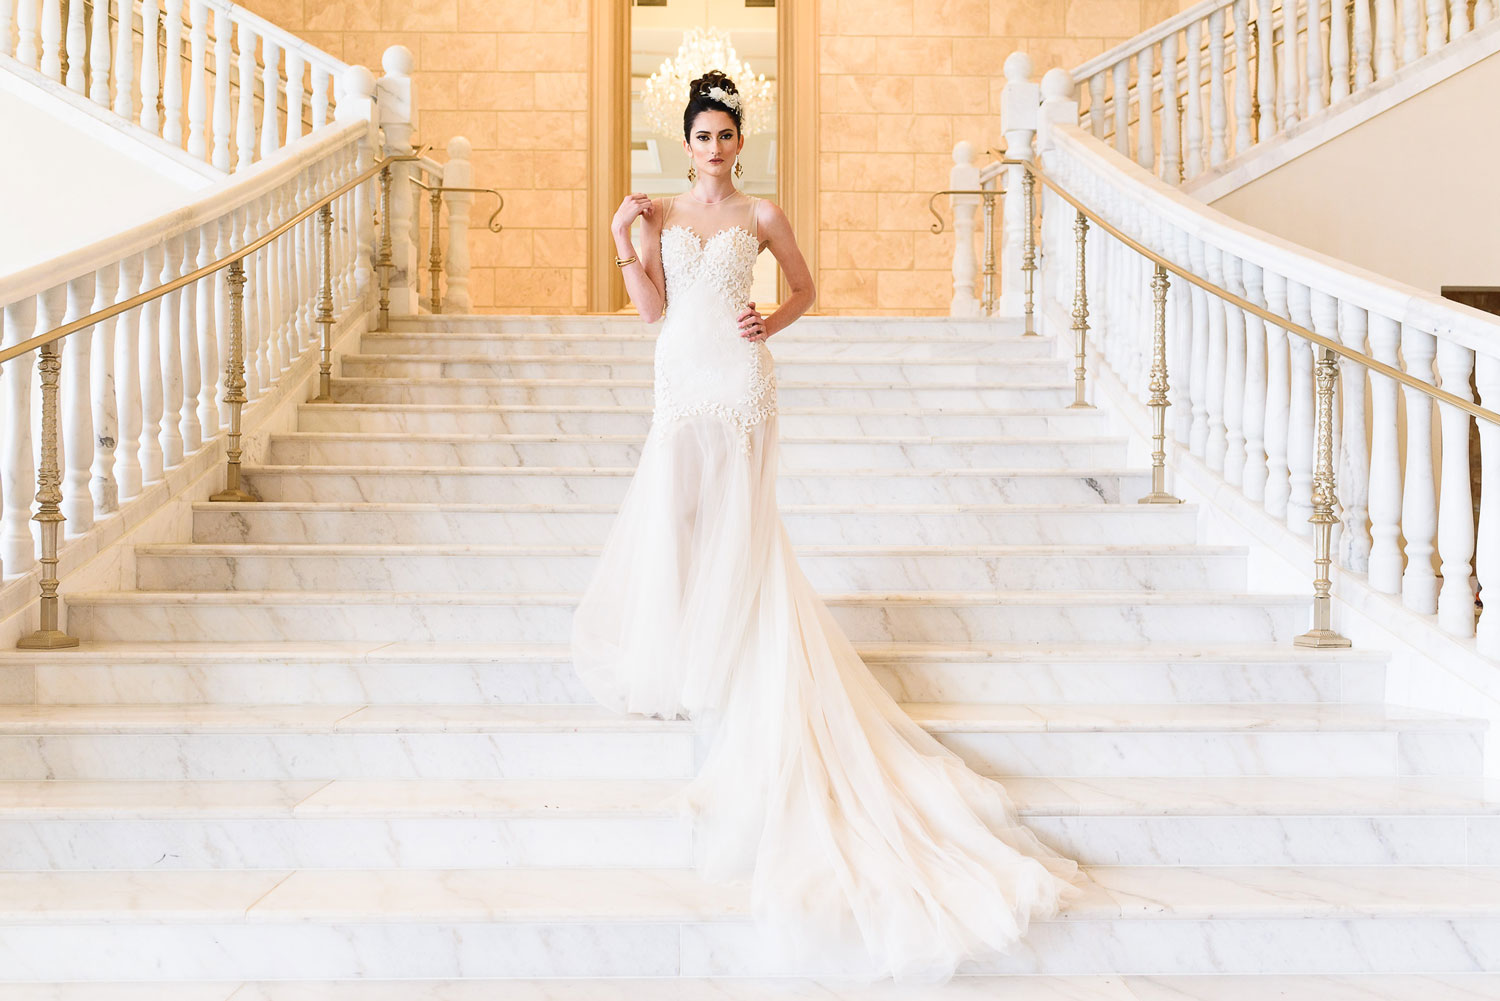 Styled shoot with bright purple color palette storybook setting Lily V Events bride on stairs